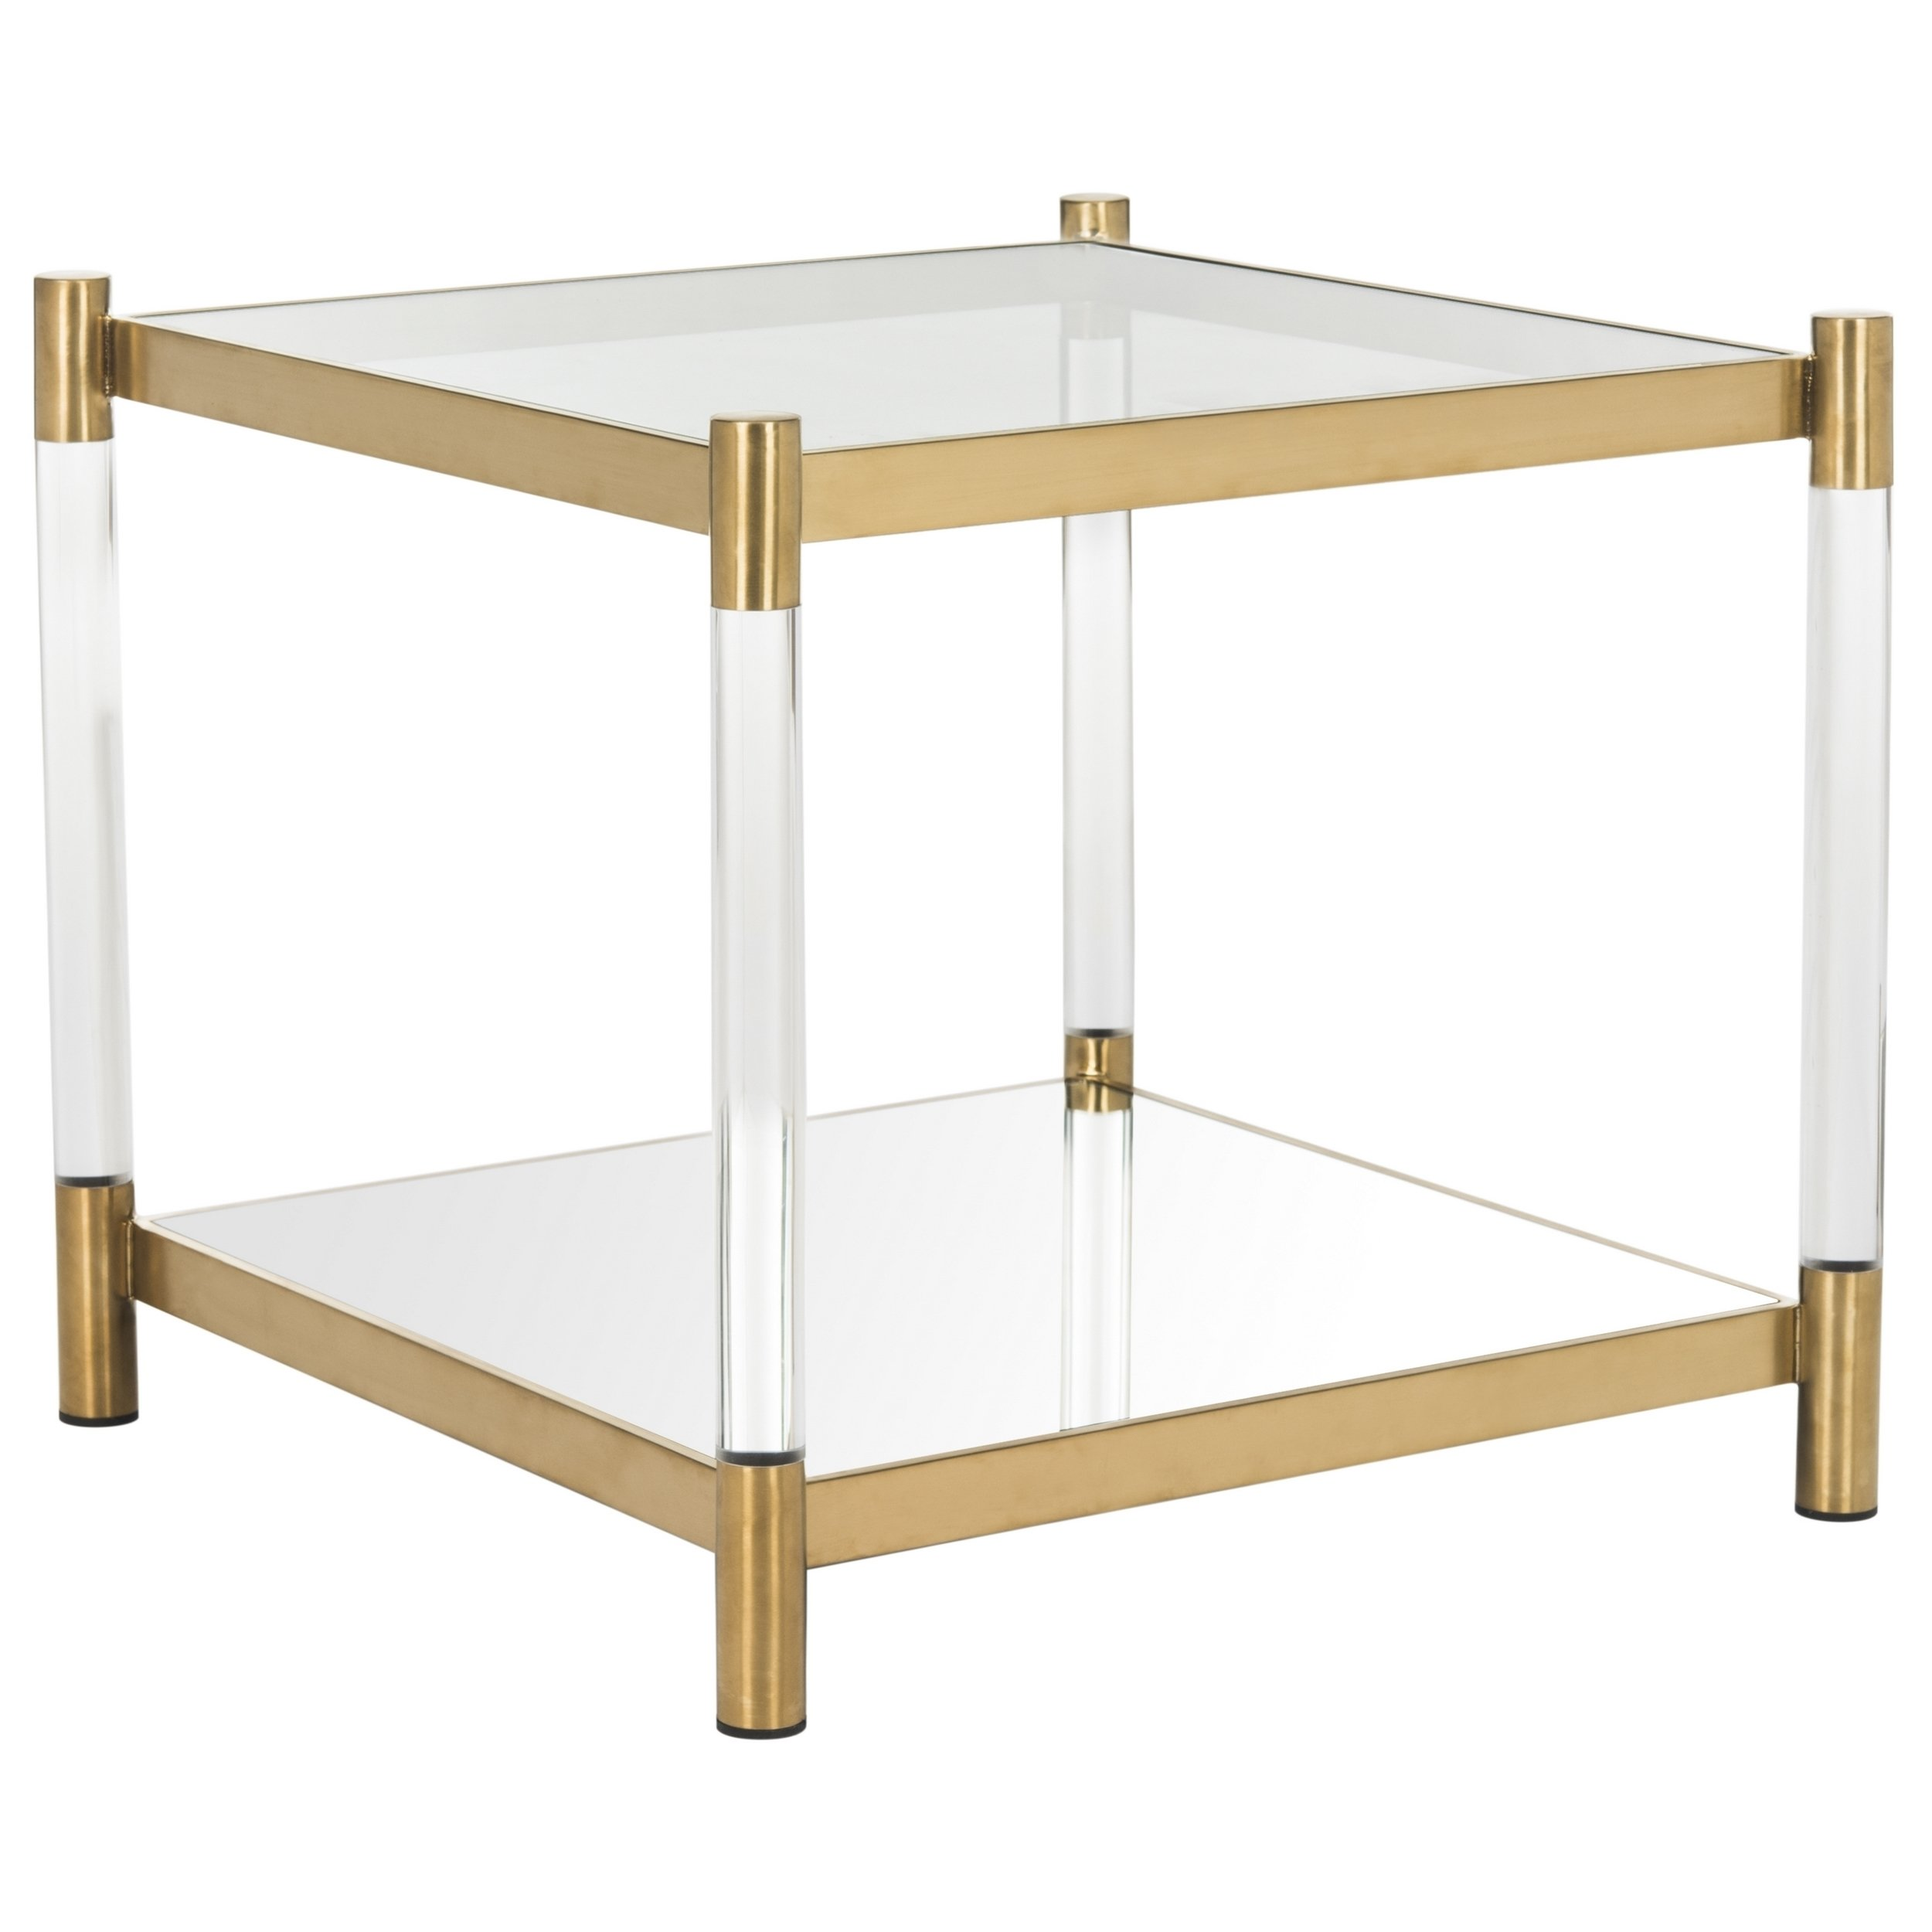 safavieh couture high line collection shayla acrylic accent table prod furniture wellington storage for small spaces metal legs modern gold lamp back living room chair coffee